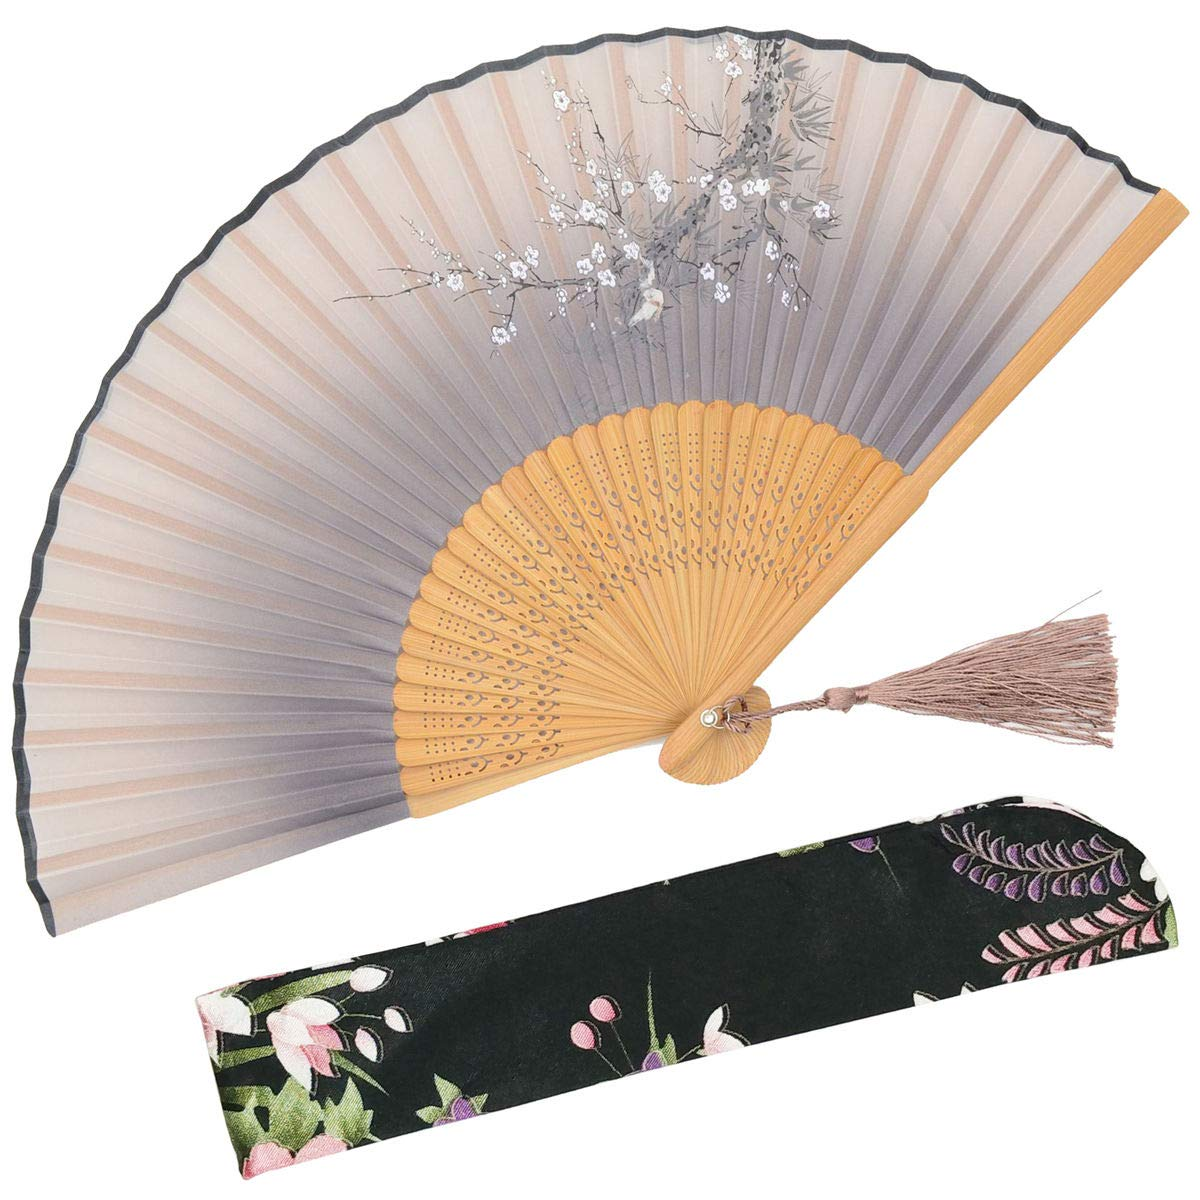 for Wedding Gray Dancing OMyTea Sakura Love Chinese//Japanese Folding Hand Held Fan for Women Church With a Fabric Sleeve for Protection Gifts Party